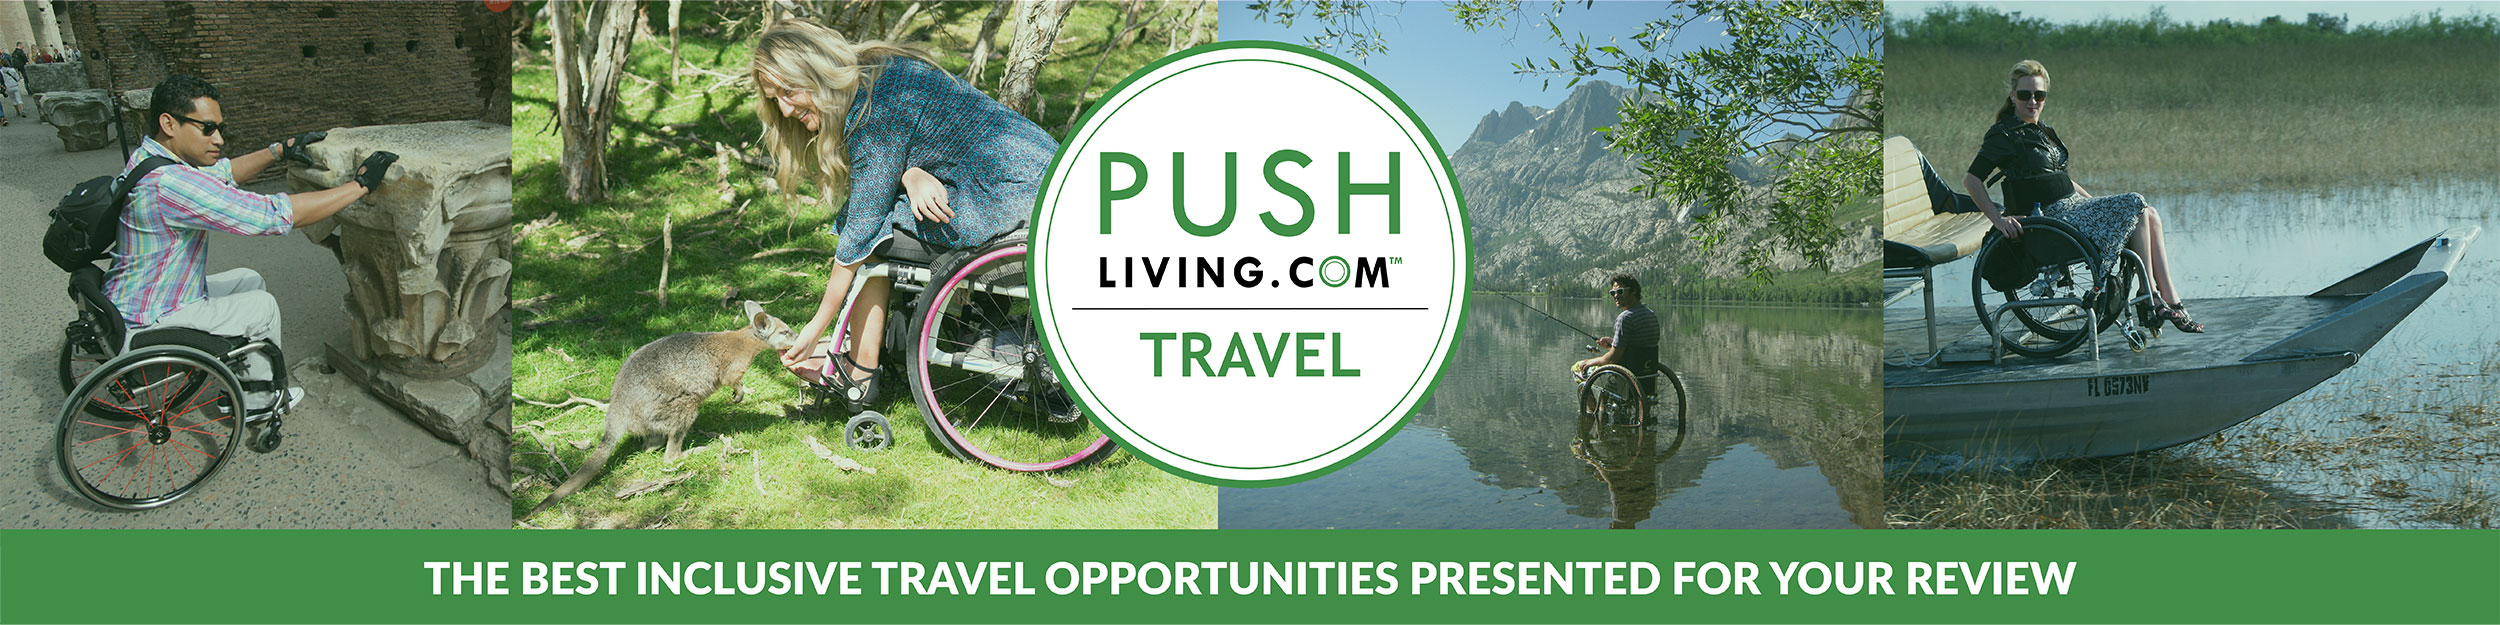 Pushliving Travel - The best inclusive travel opportunities presented for your review